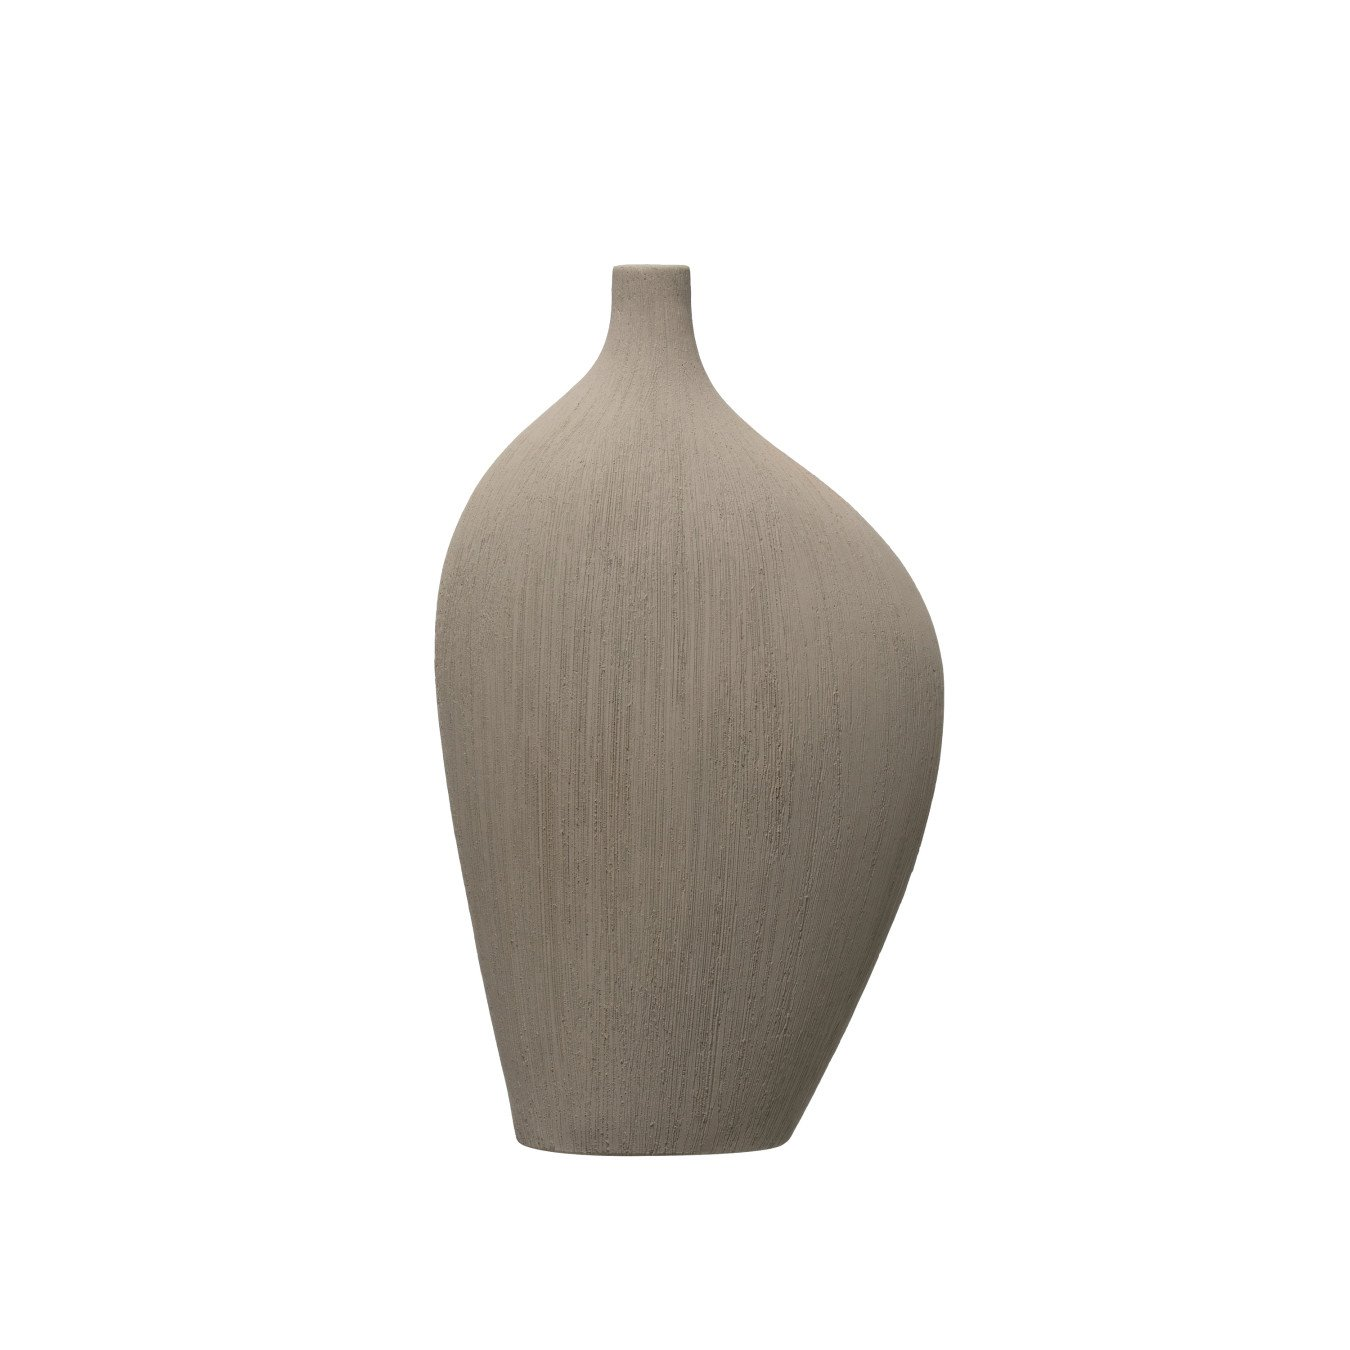 "12""H Flat Abstract Stoneware Vase with Rough Texture"